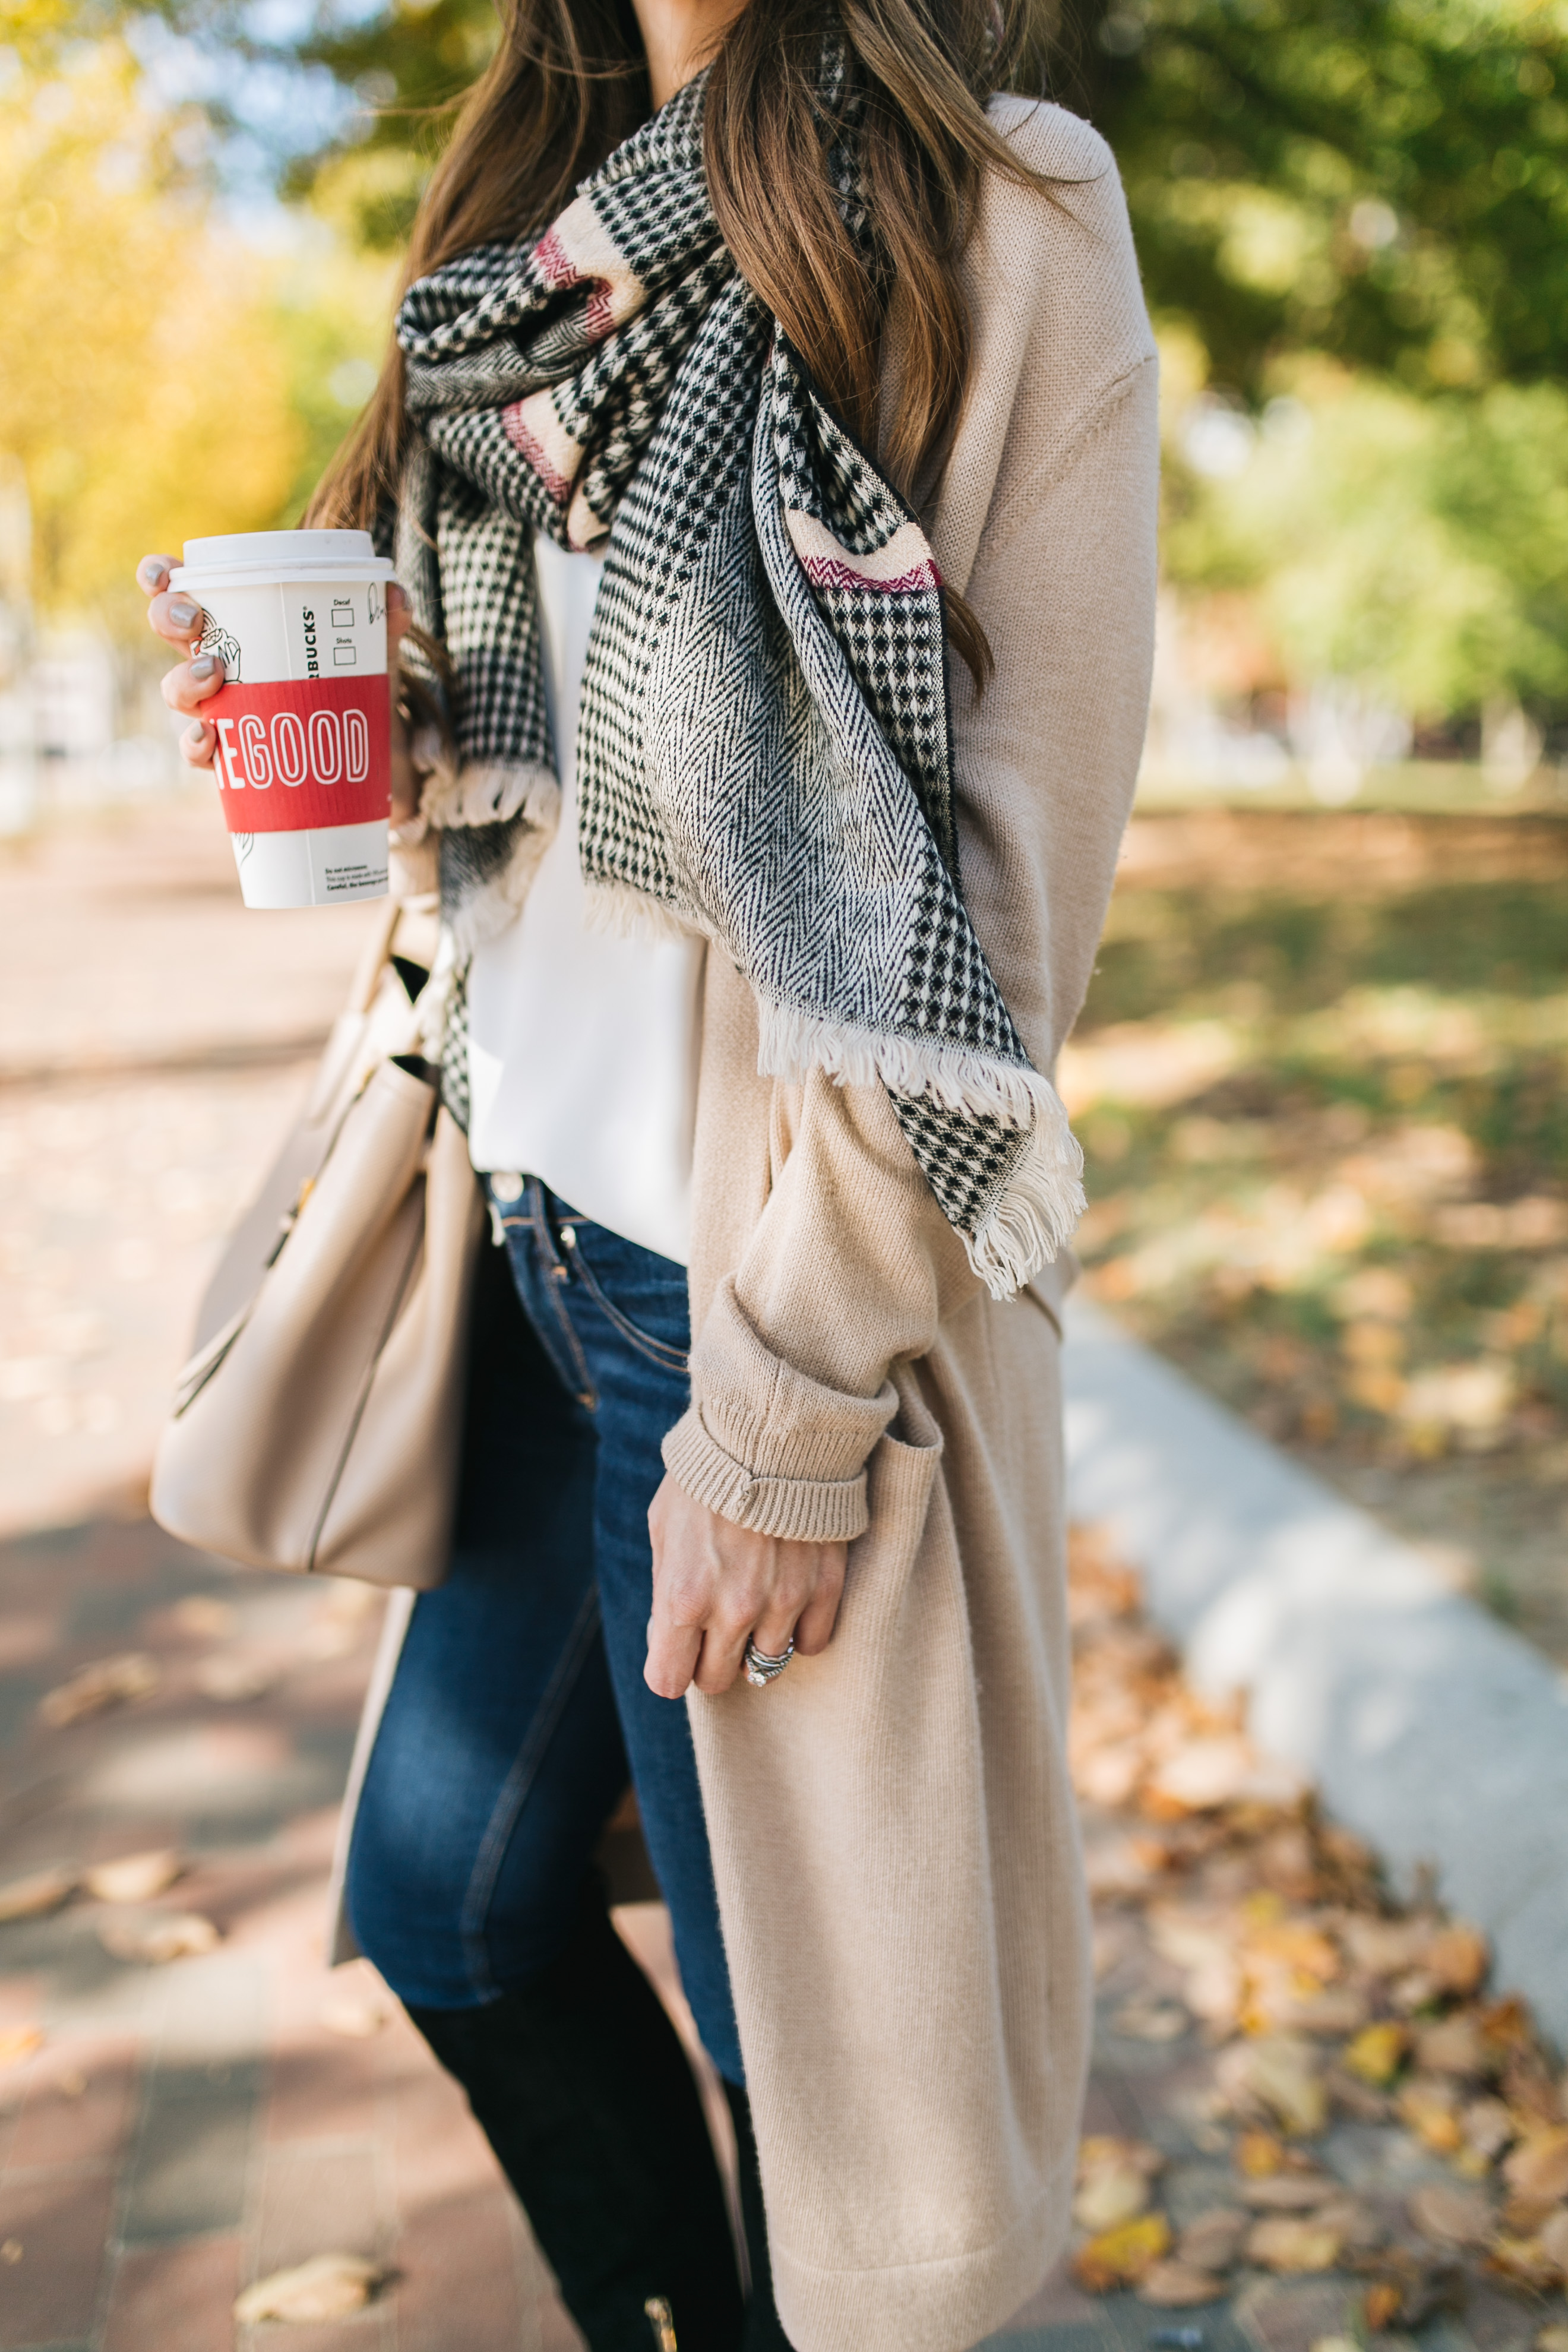 Fashion blogger Daryl-Ann Denner shares Burberry scarf dupe under $30 and a fall outfit with neutral cardigan and black suede boots